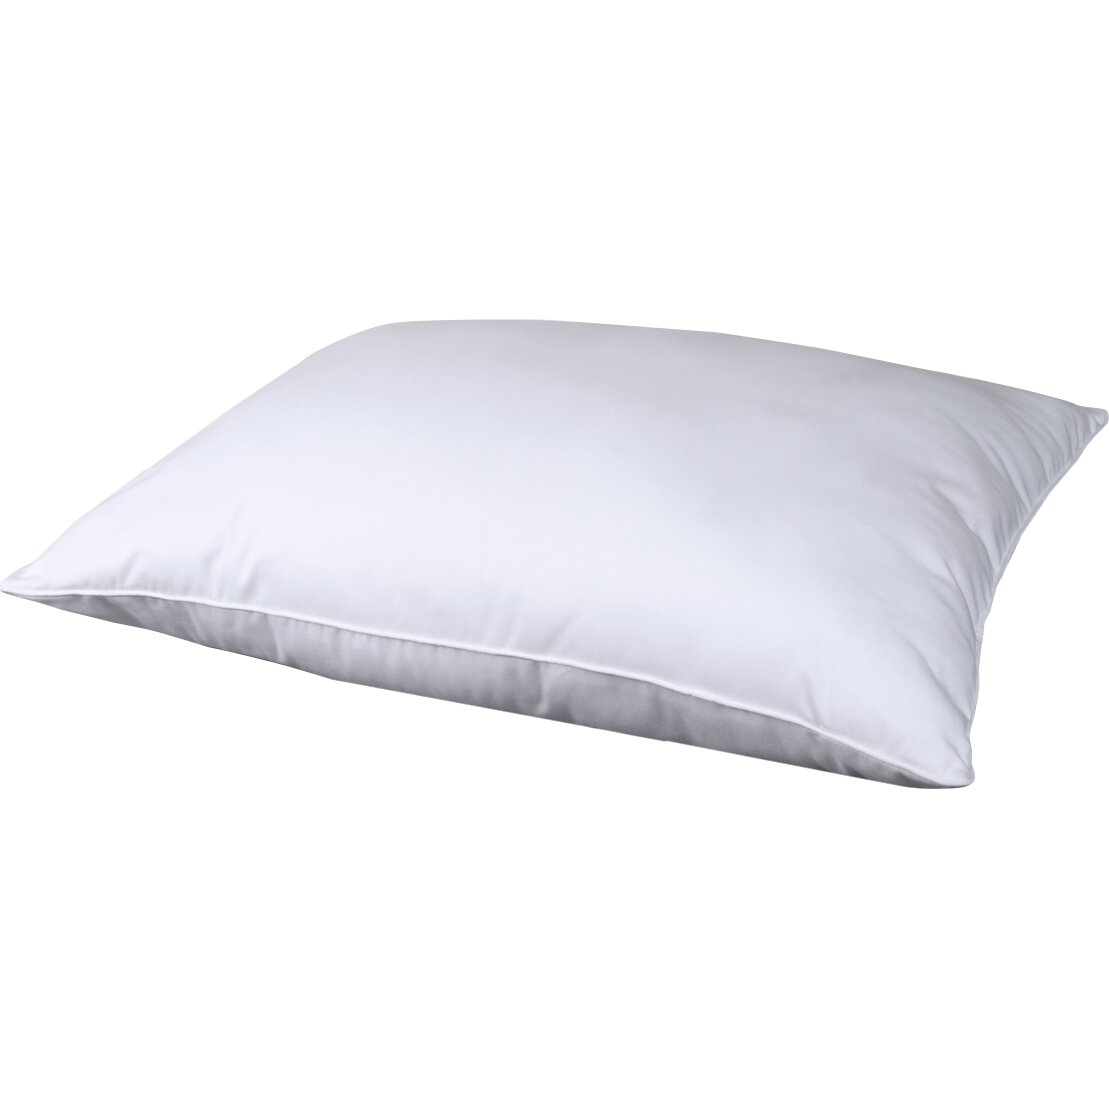 Cotton Loft All Natural Filled Bed 100 Cotton Pillow